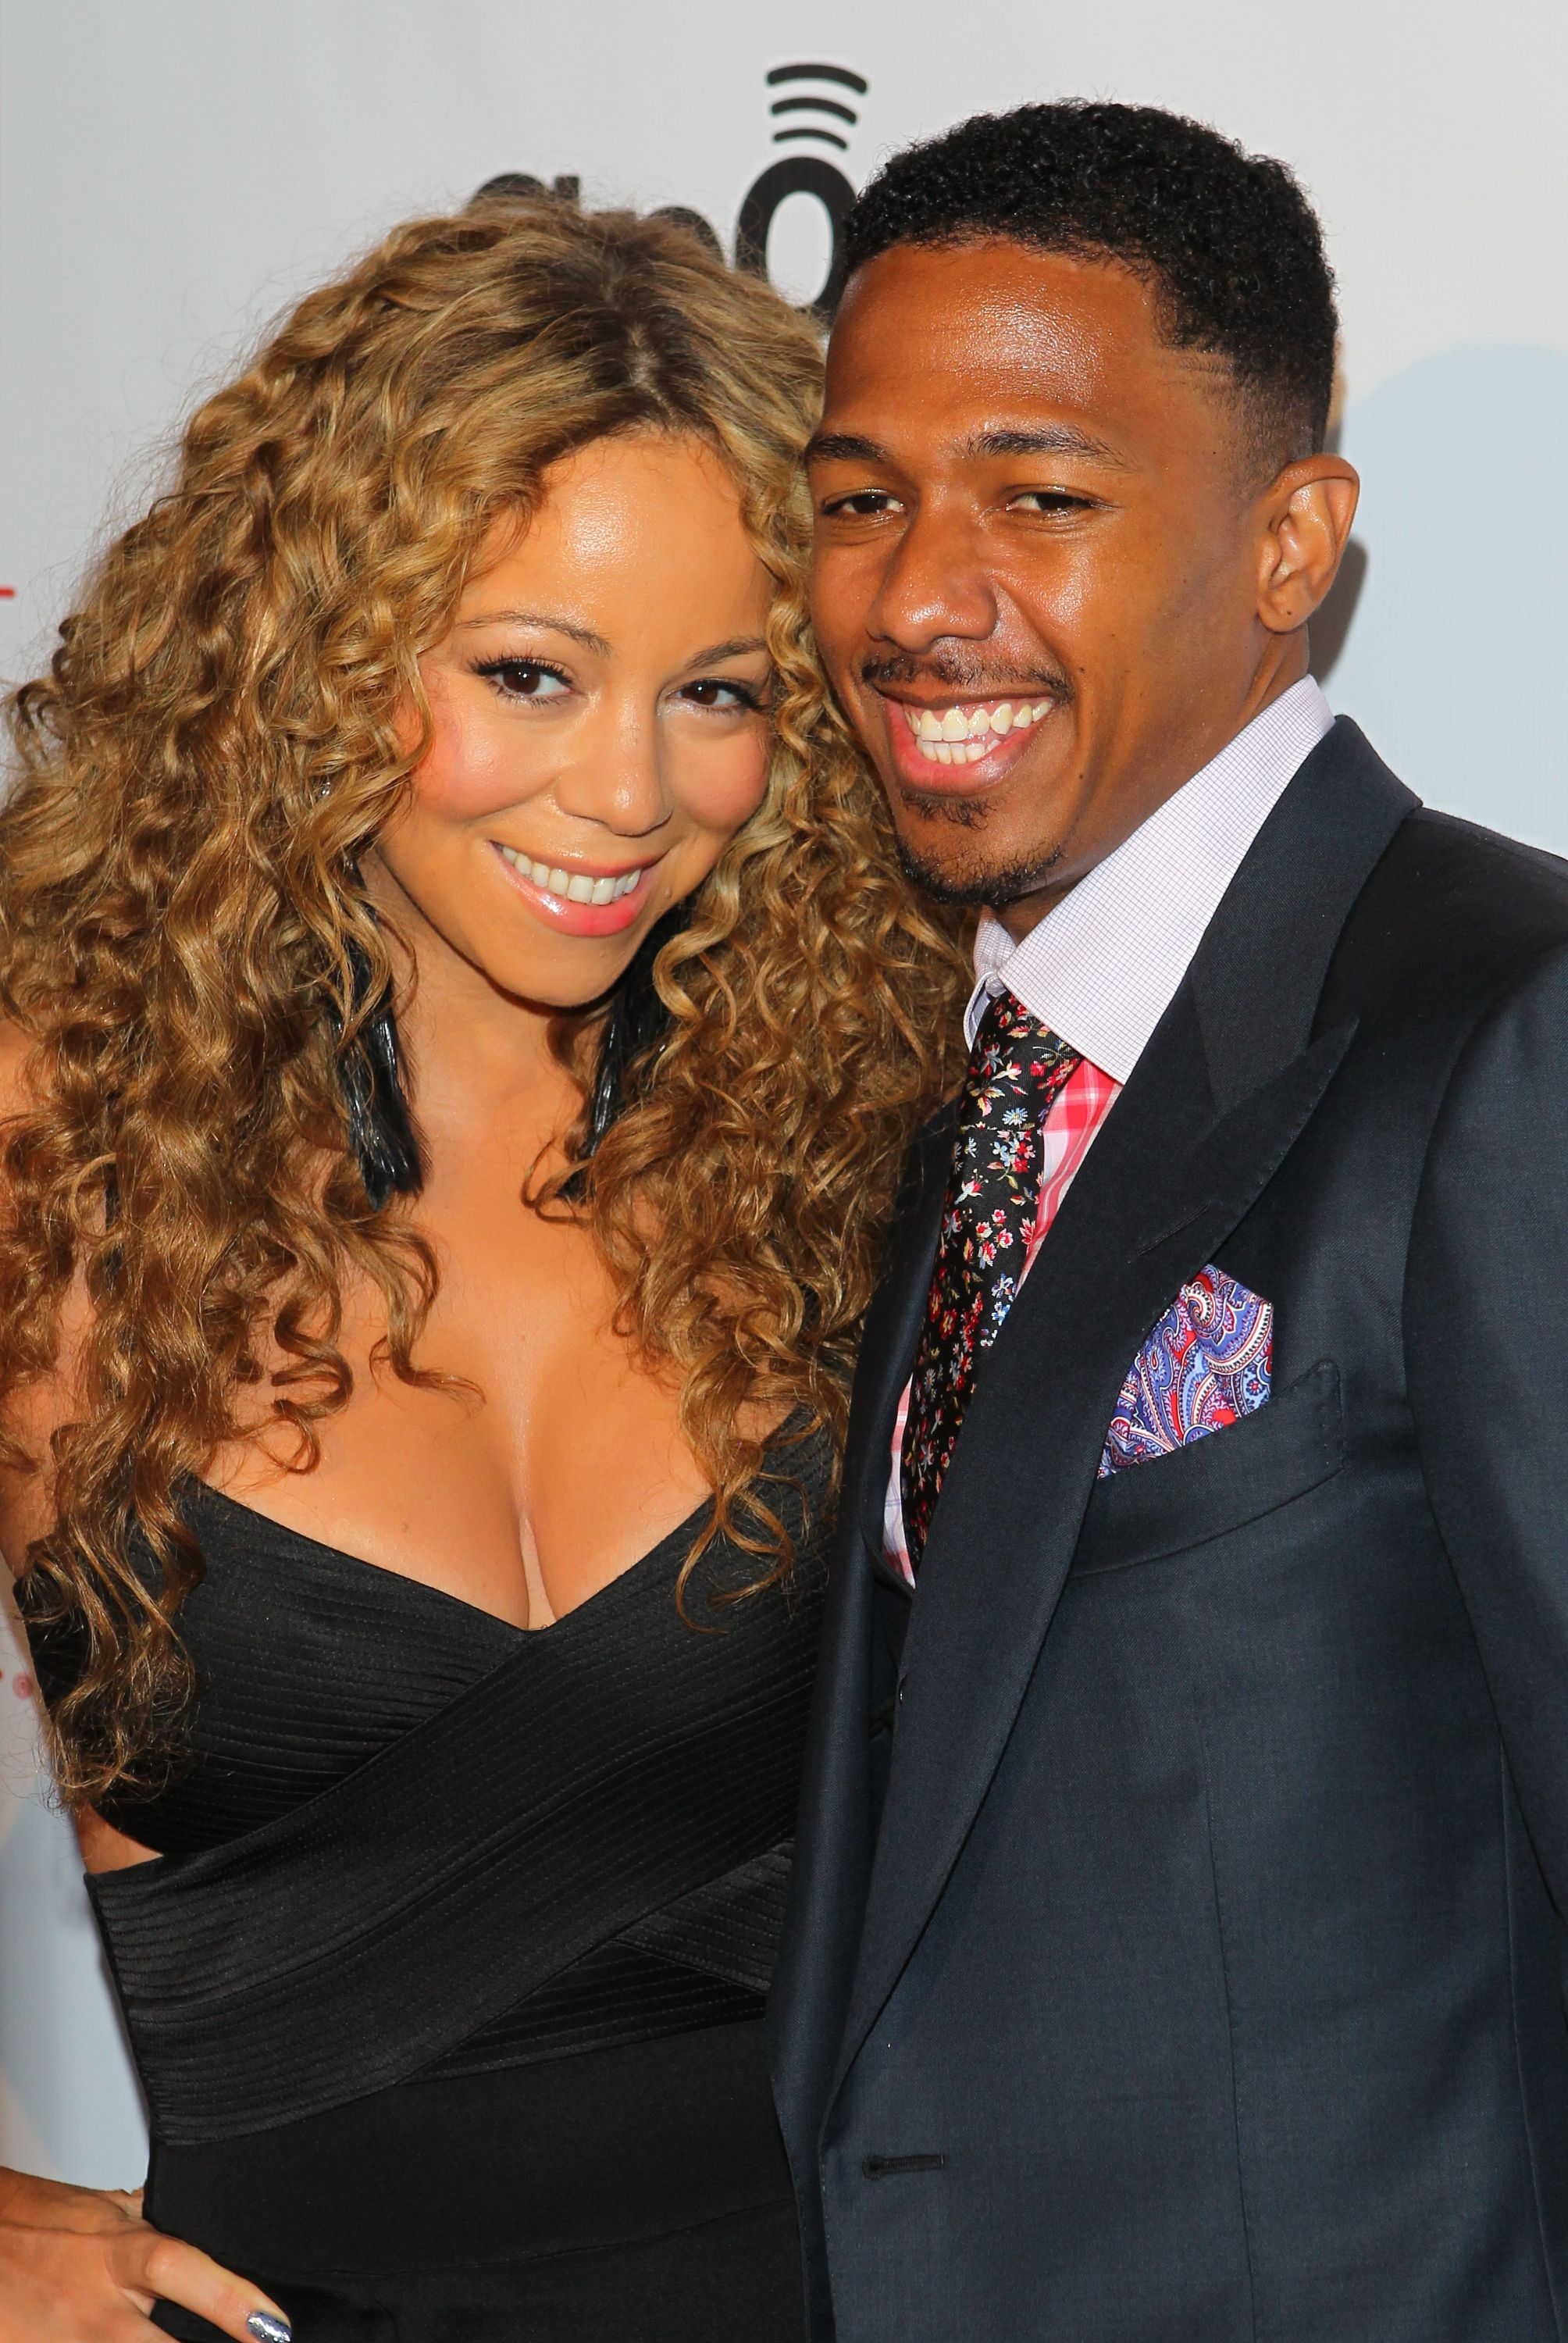 Mariah Carey Fully Shaded Nick Cannon After He Said He Wanted to Remarry Her